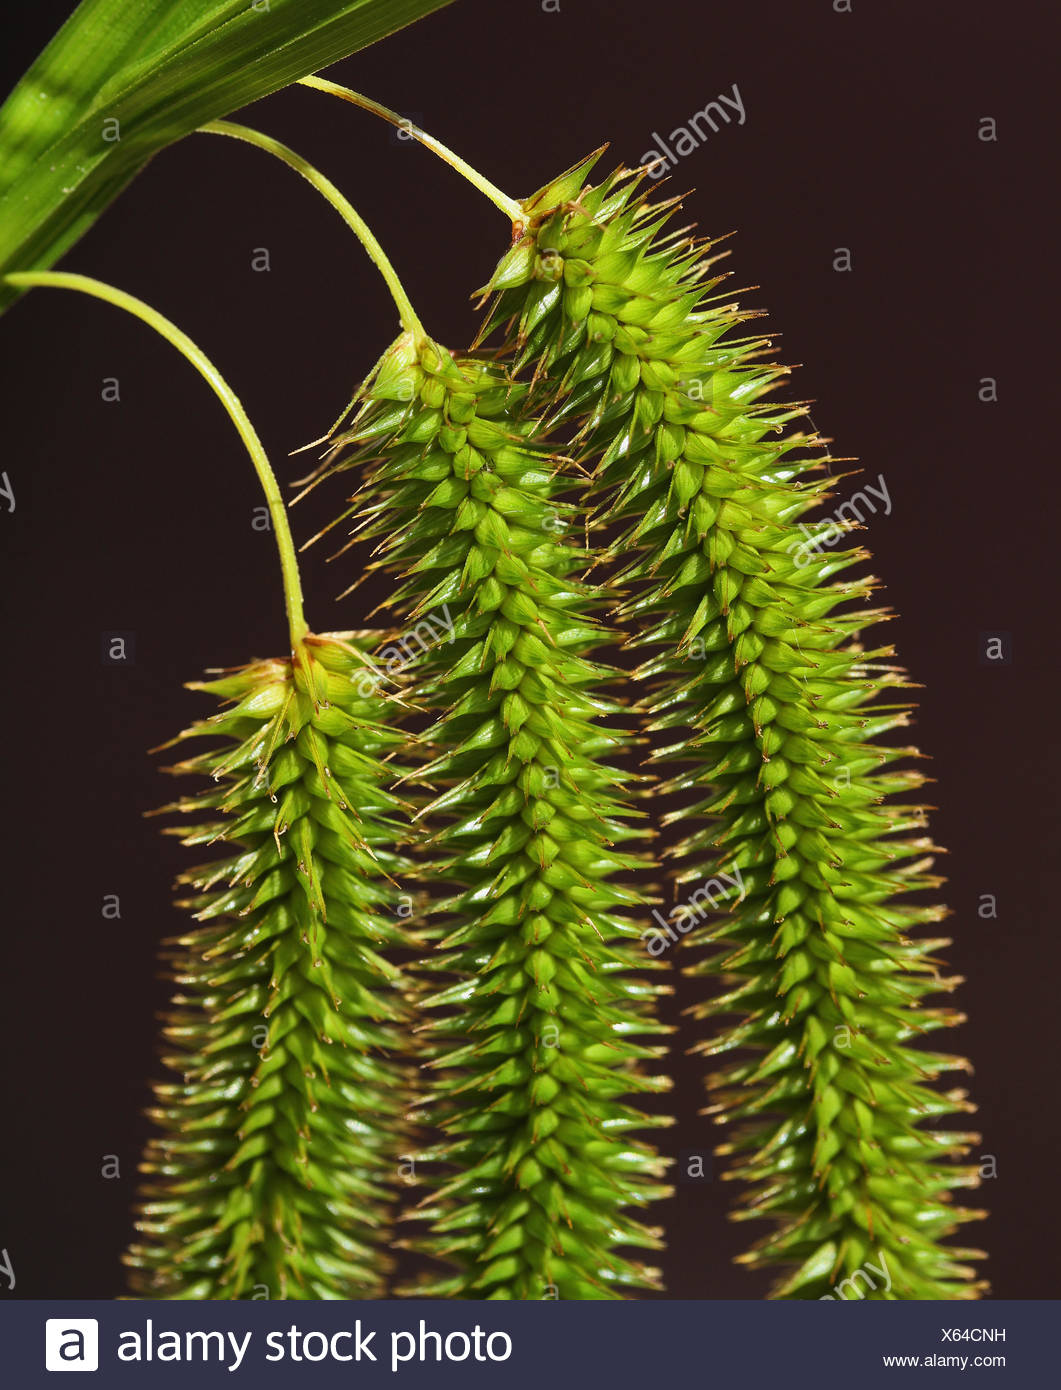 Close up of female spikelets of Cyperus Sedge (Carex pseudocyperus) hanging down - Stock Image